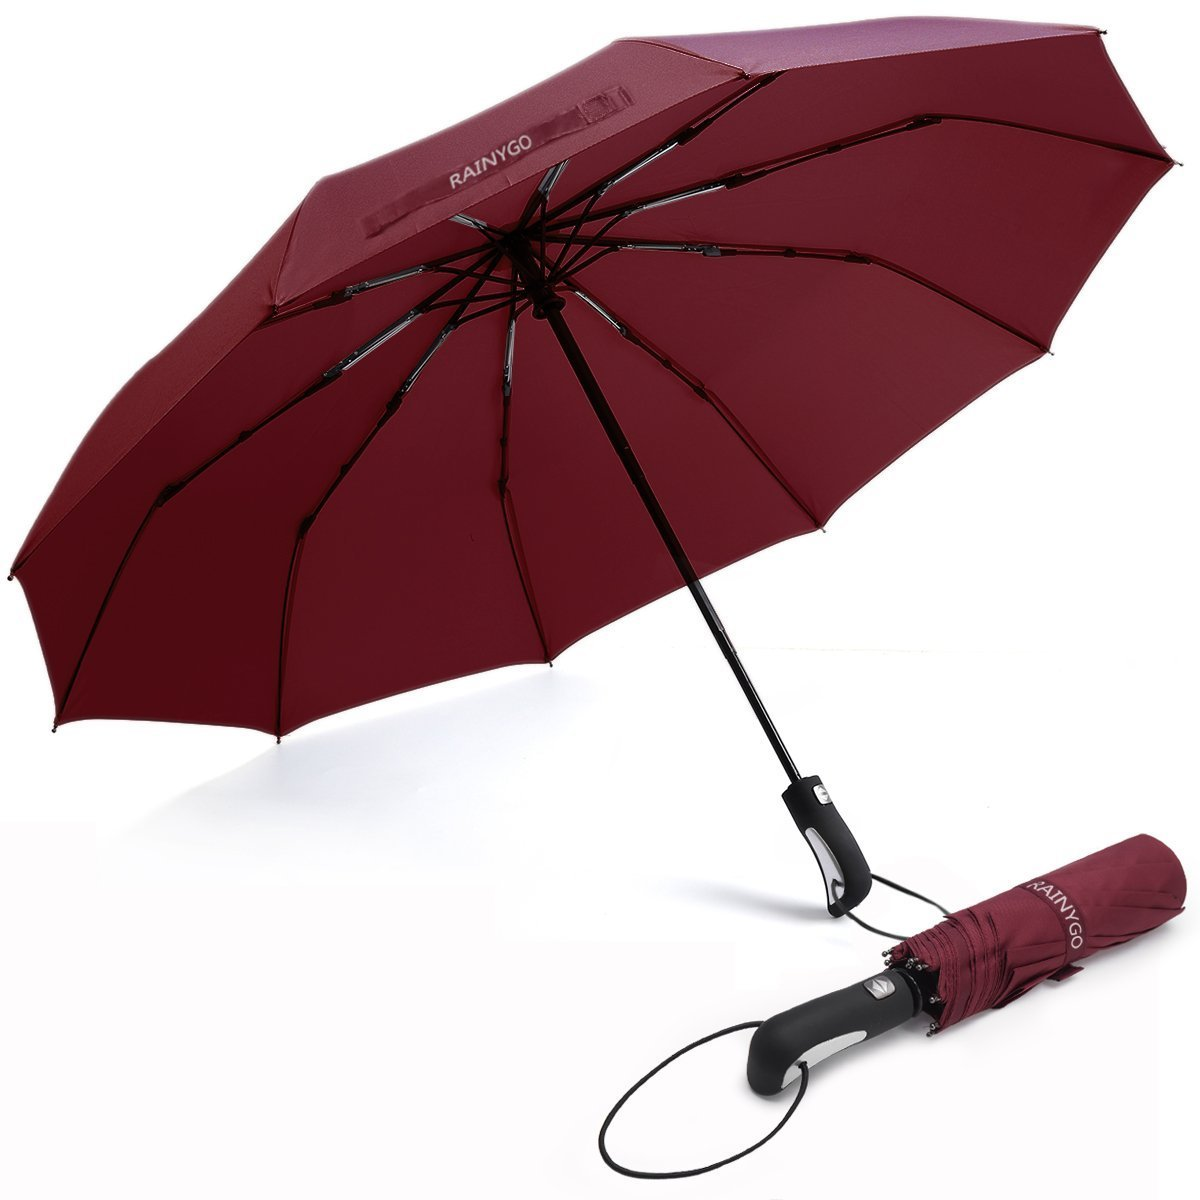 RAINYGO Umbrellas Travel Folding Automatic Umbrella Strong Windproof Compact 210T 10 Ribs Light Weight Auto Open Close